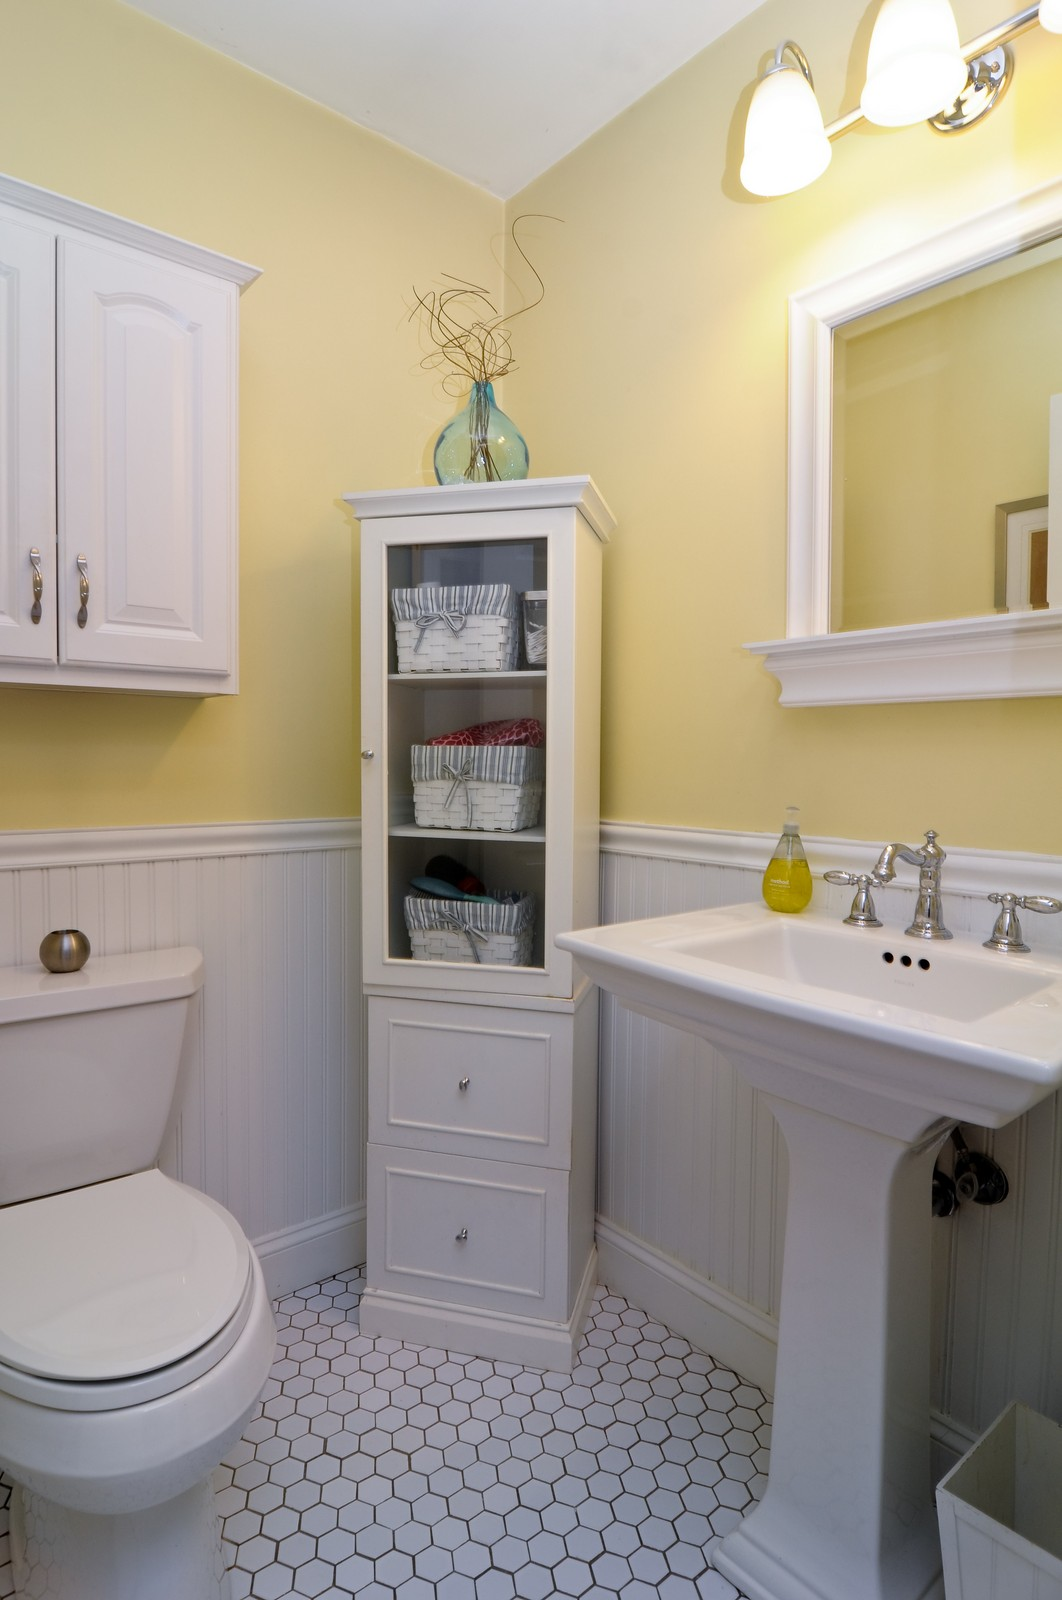 Real Estate Photography - 1615 Chippendale Rd, Hoffman Estates, IL, 60195 - Master Bathroom